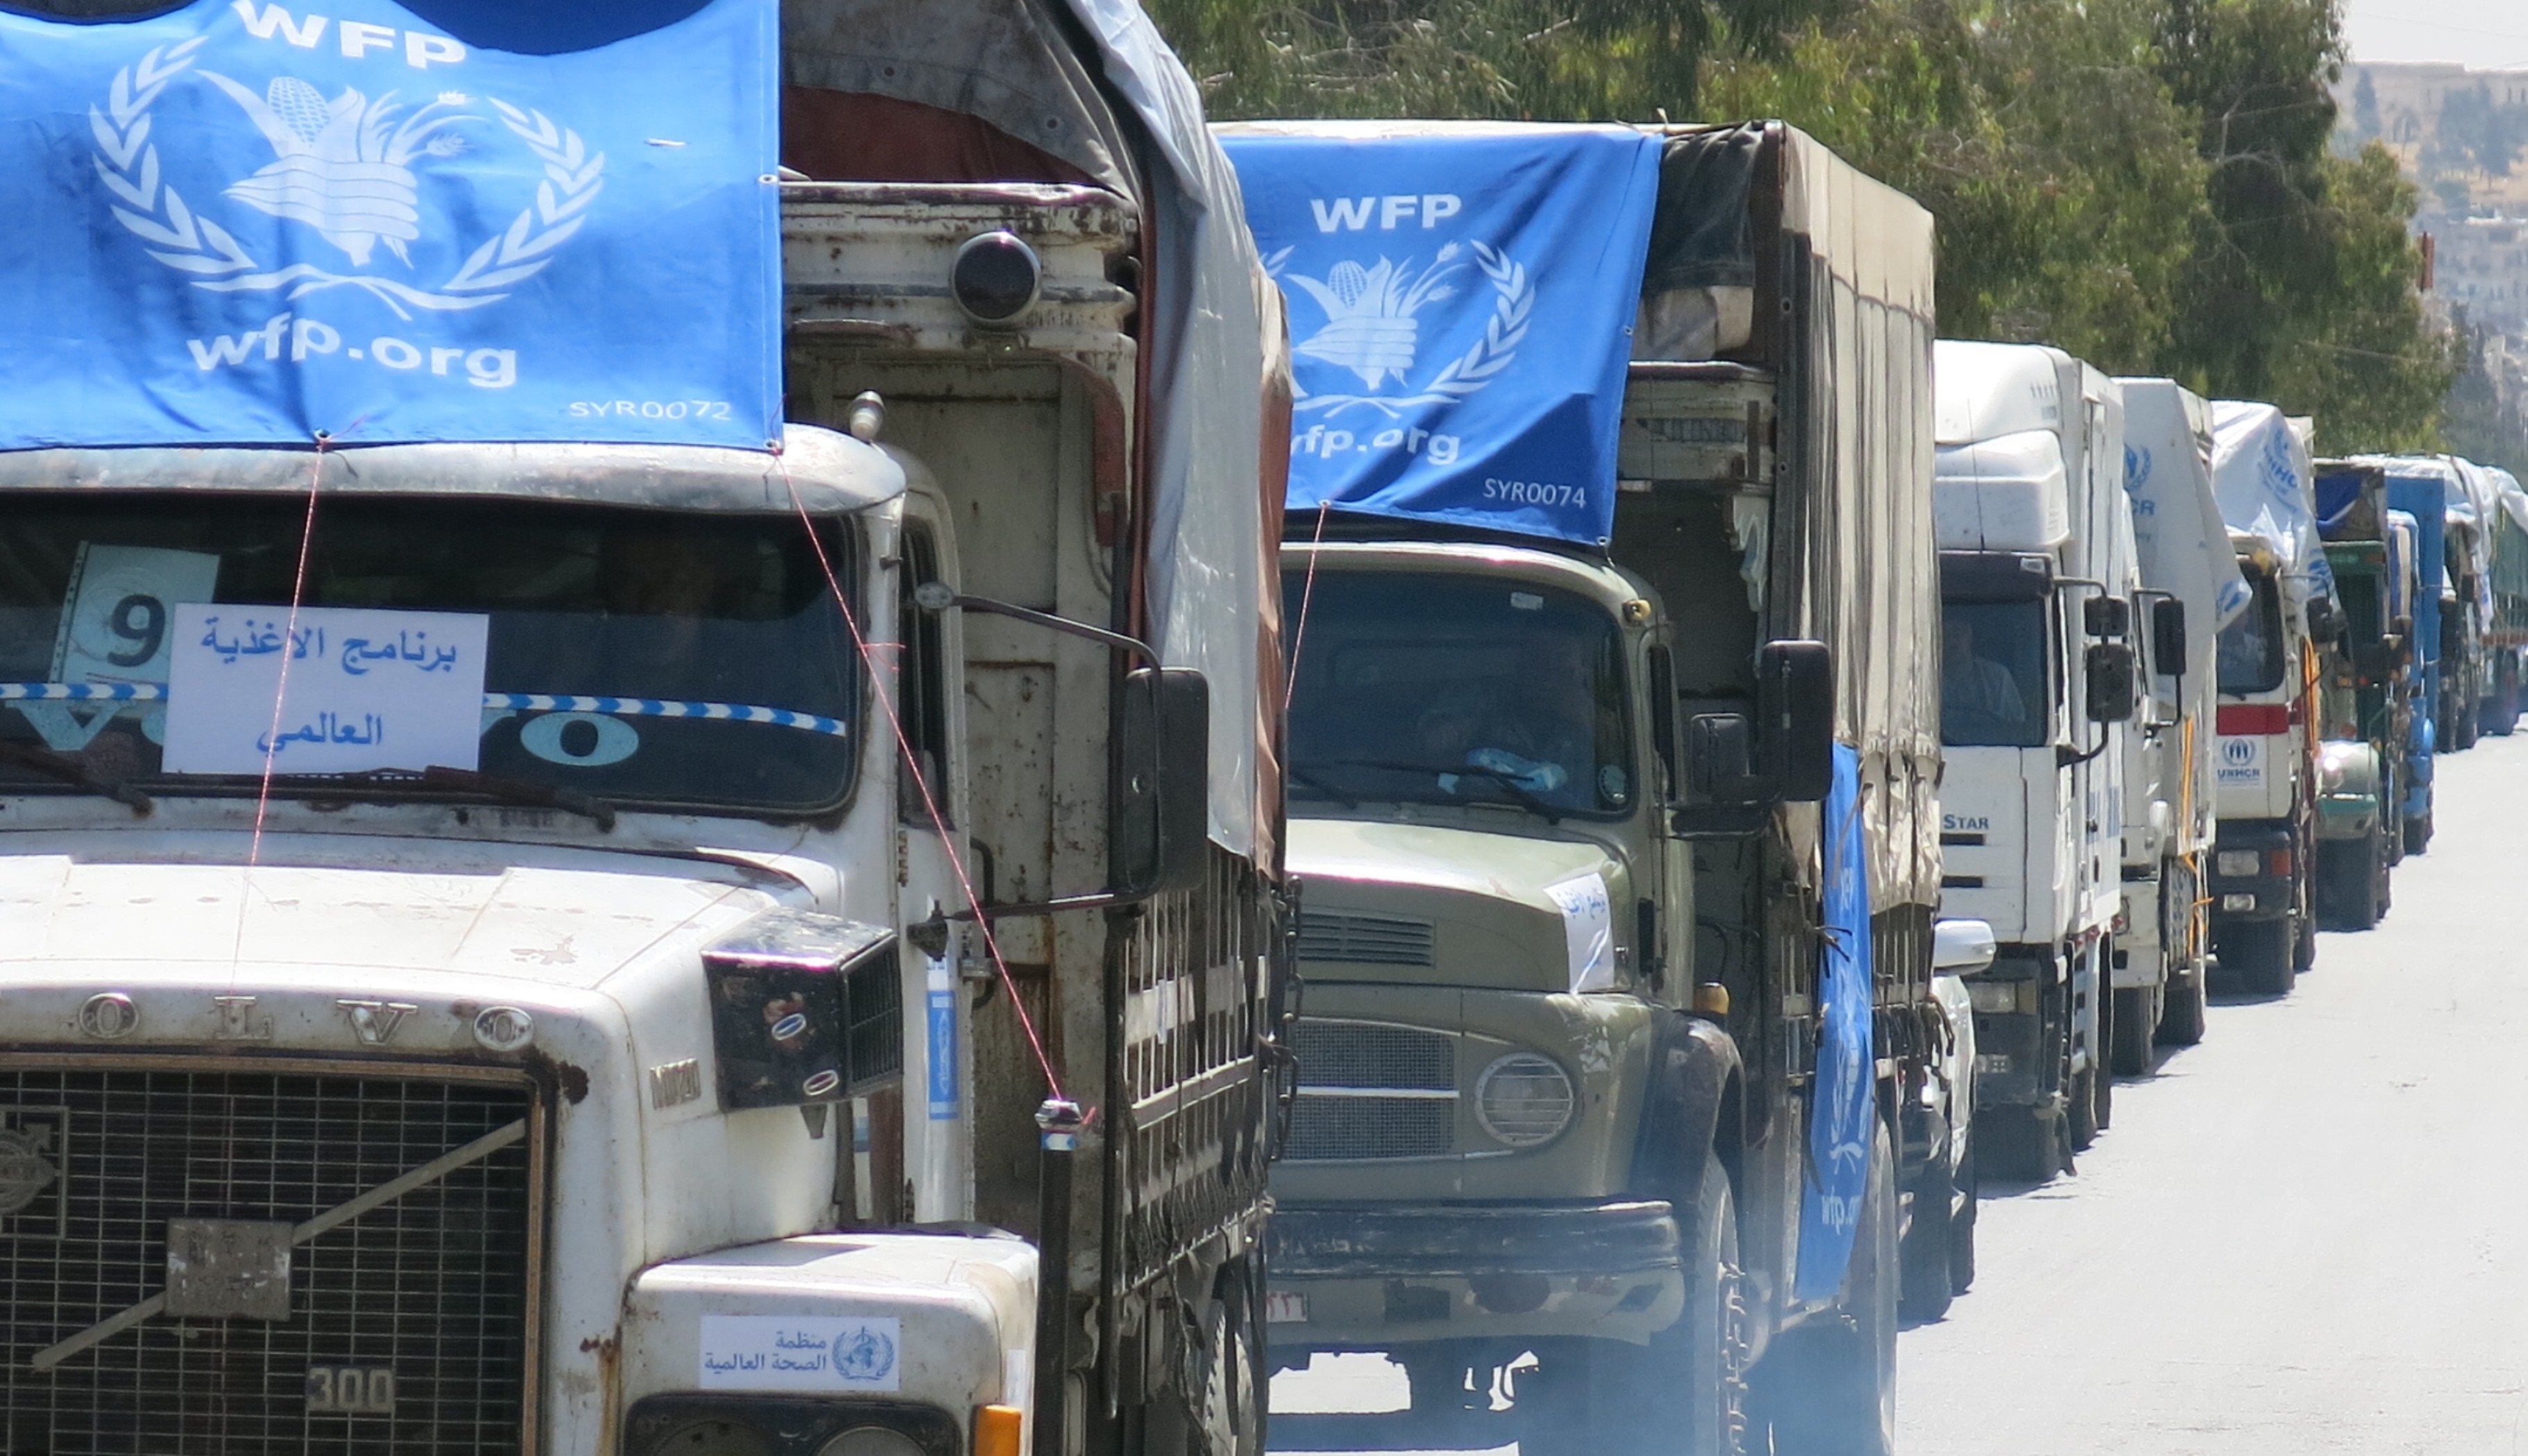 WFP Halts Airdrops To Syria's Deir Ezzor City As Land Corridor Opens